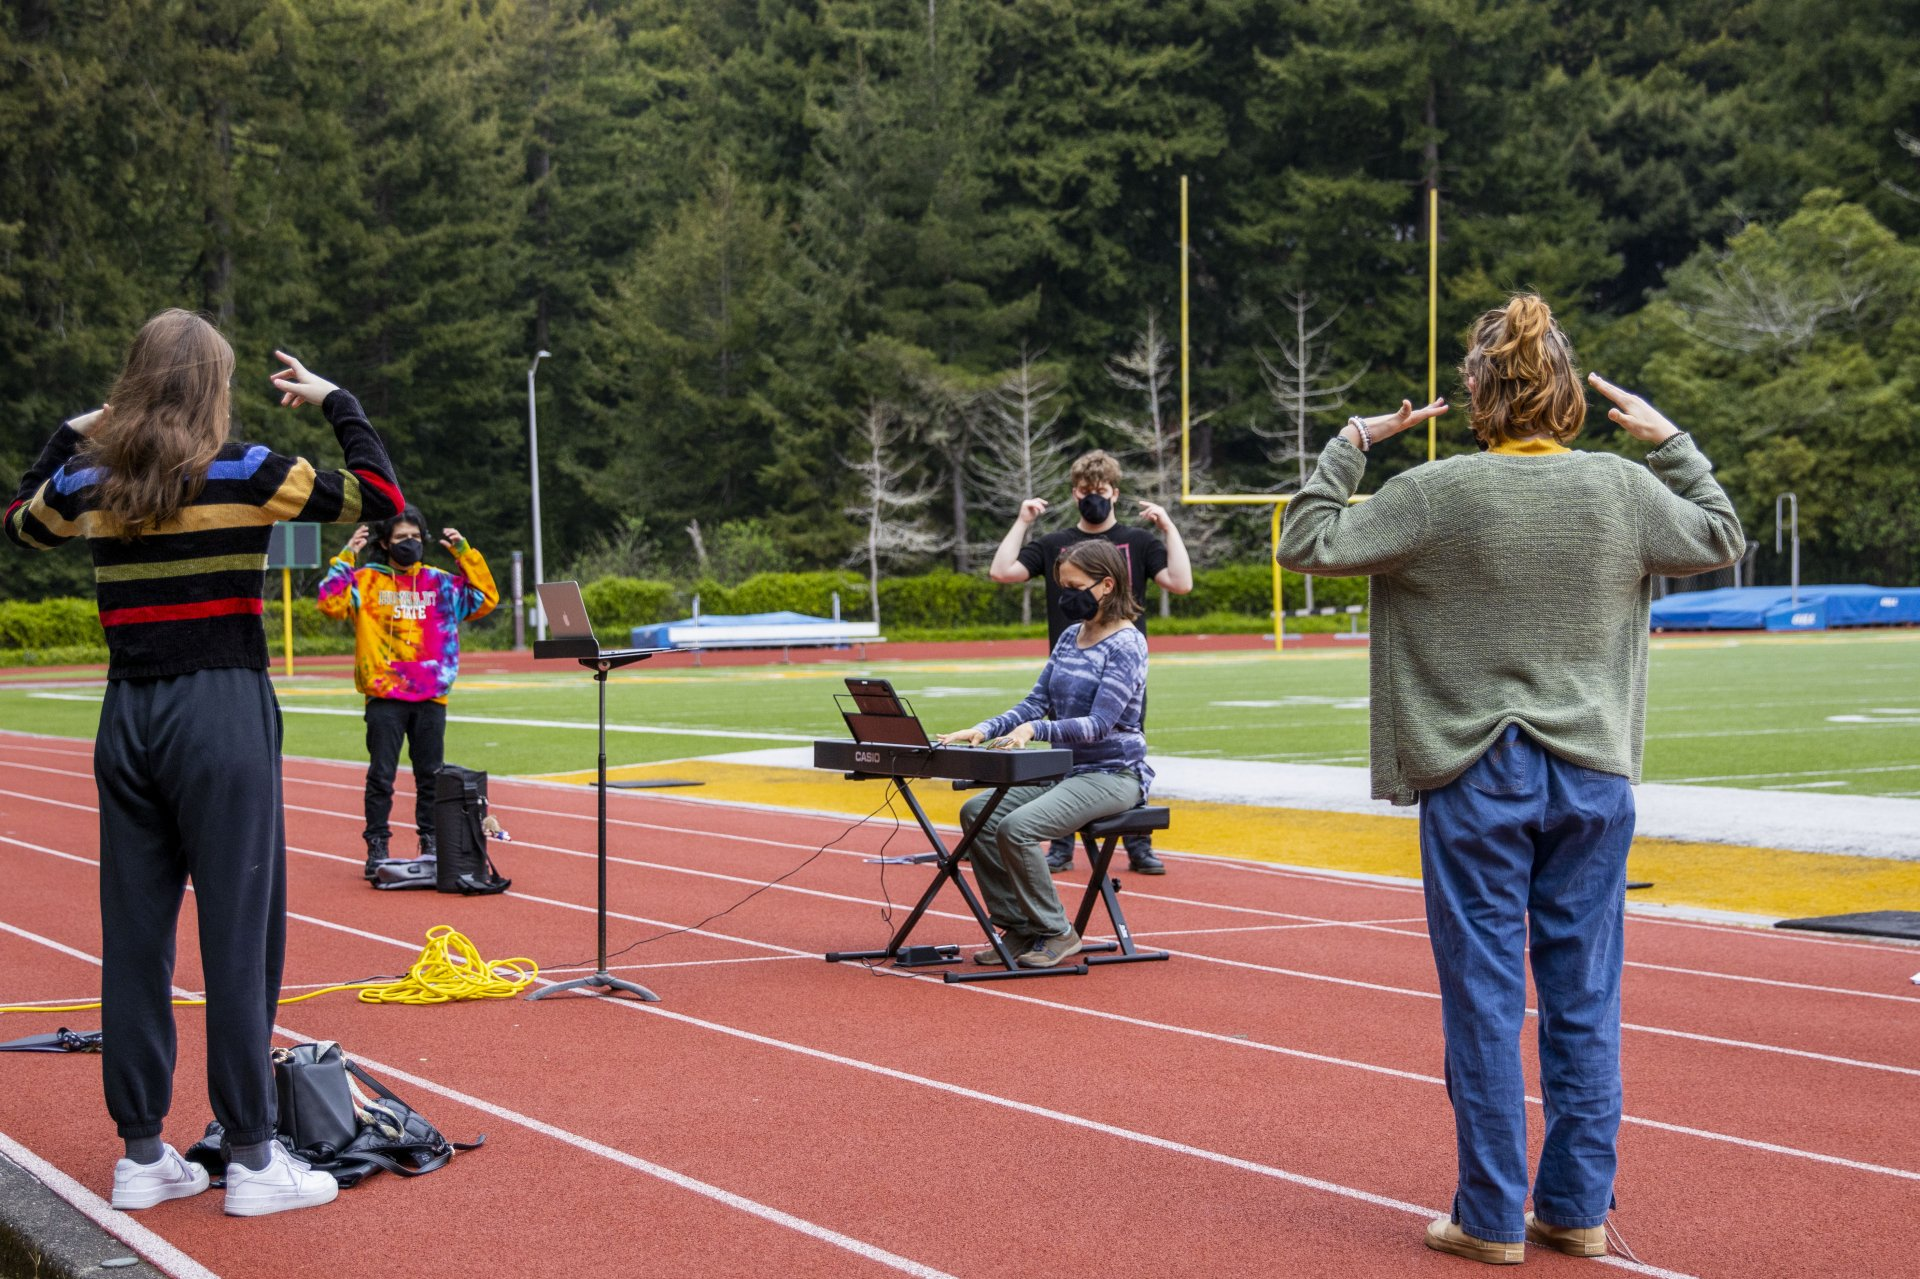 Humboldt State Professor Rachel Samet plays the piano as she walks her MUS 106B University Singers class through voacl warm-ups in the morning outside in the Redwood Bowl arena on the HSU campus on April 5. | Photo by Thomas Lal